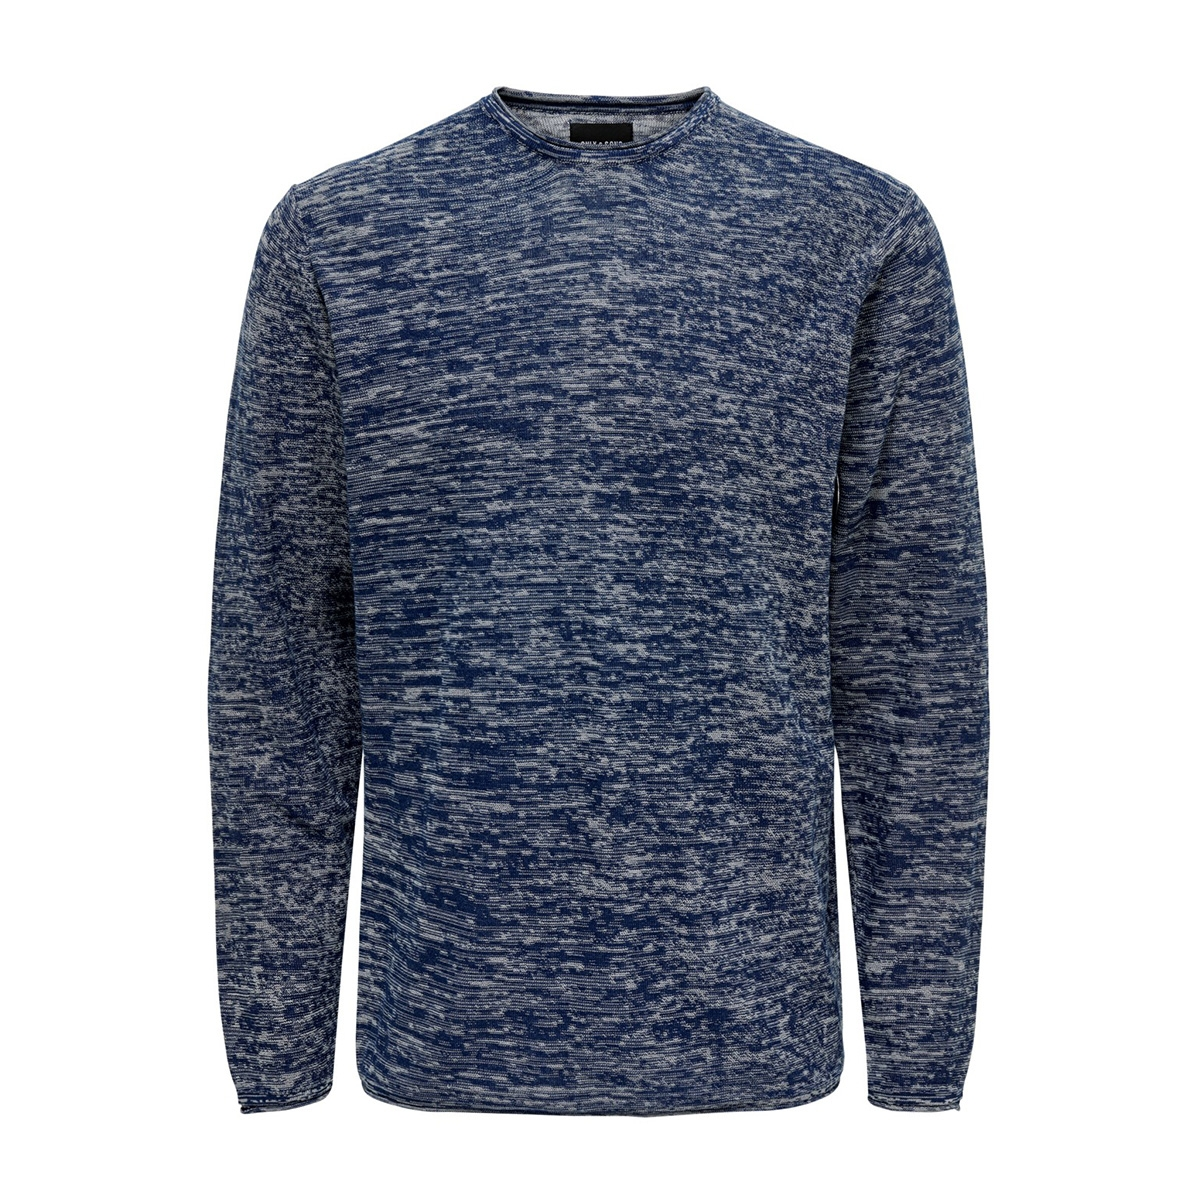 onsgarson 12 melange crew neck knit 22014420 only & sons trui insignia blue